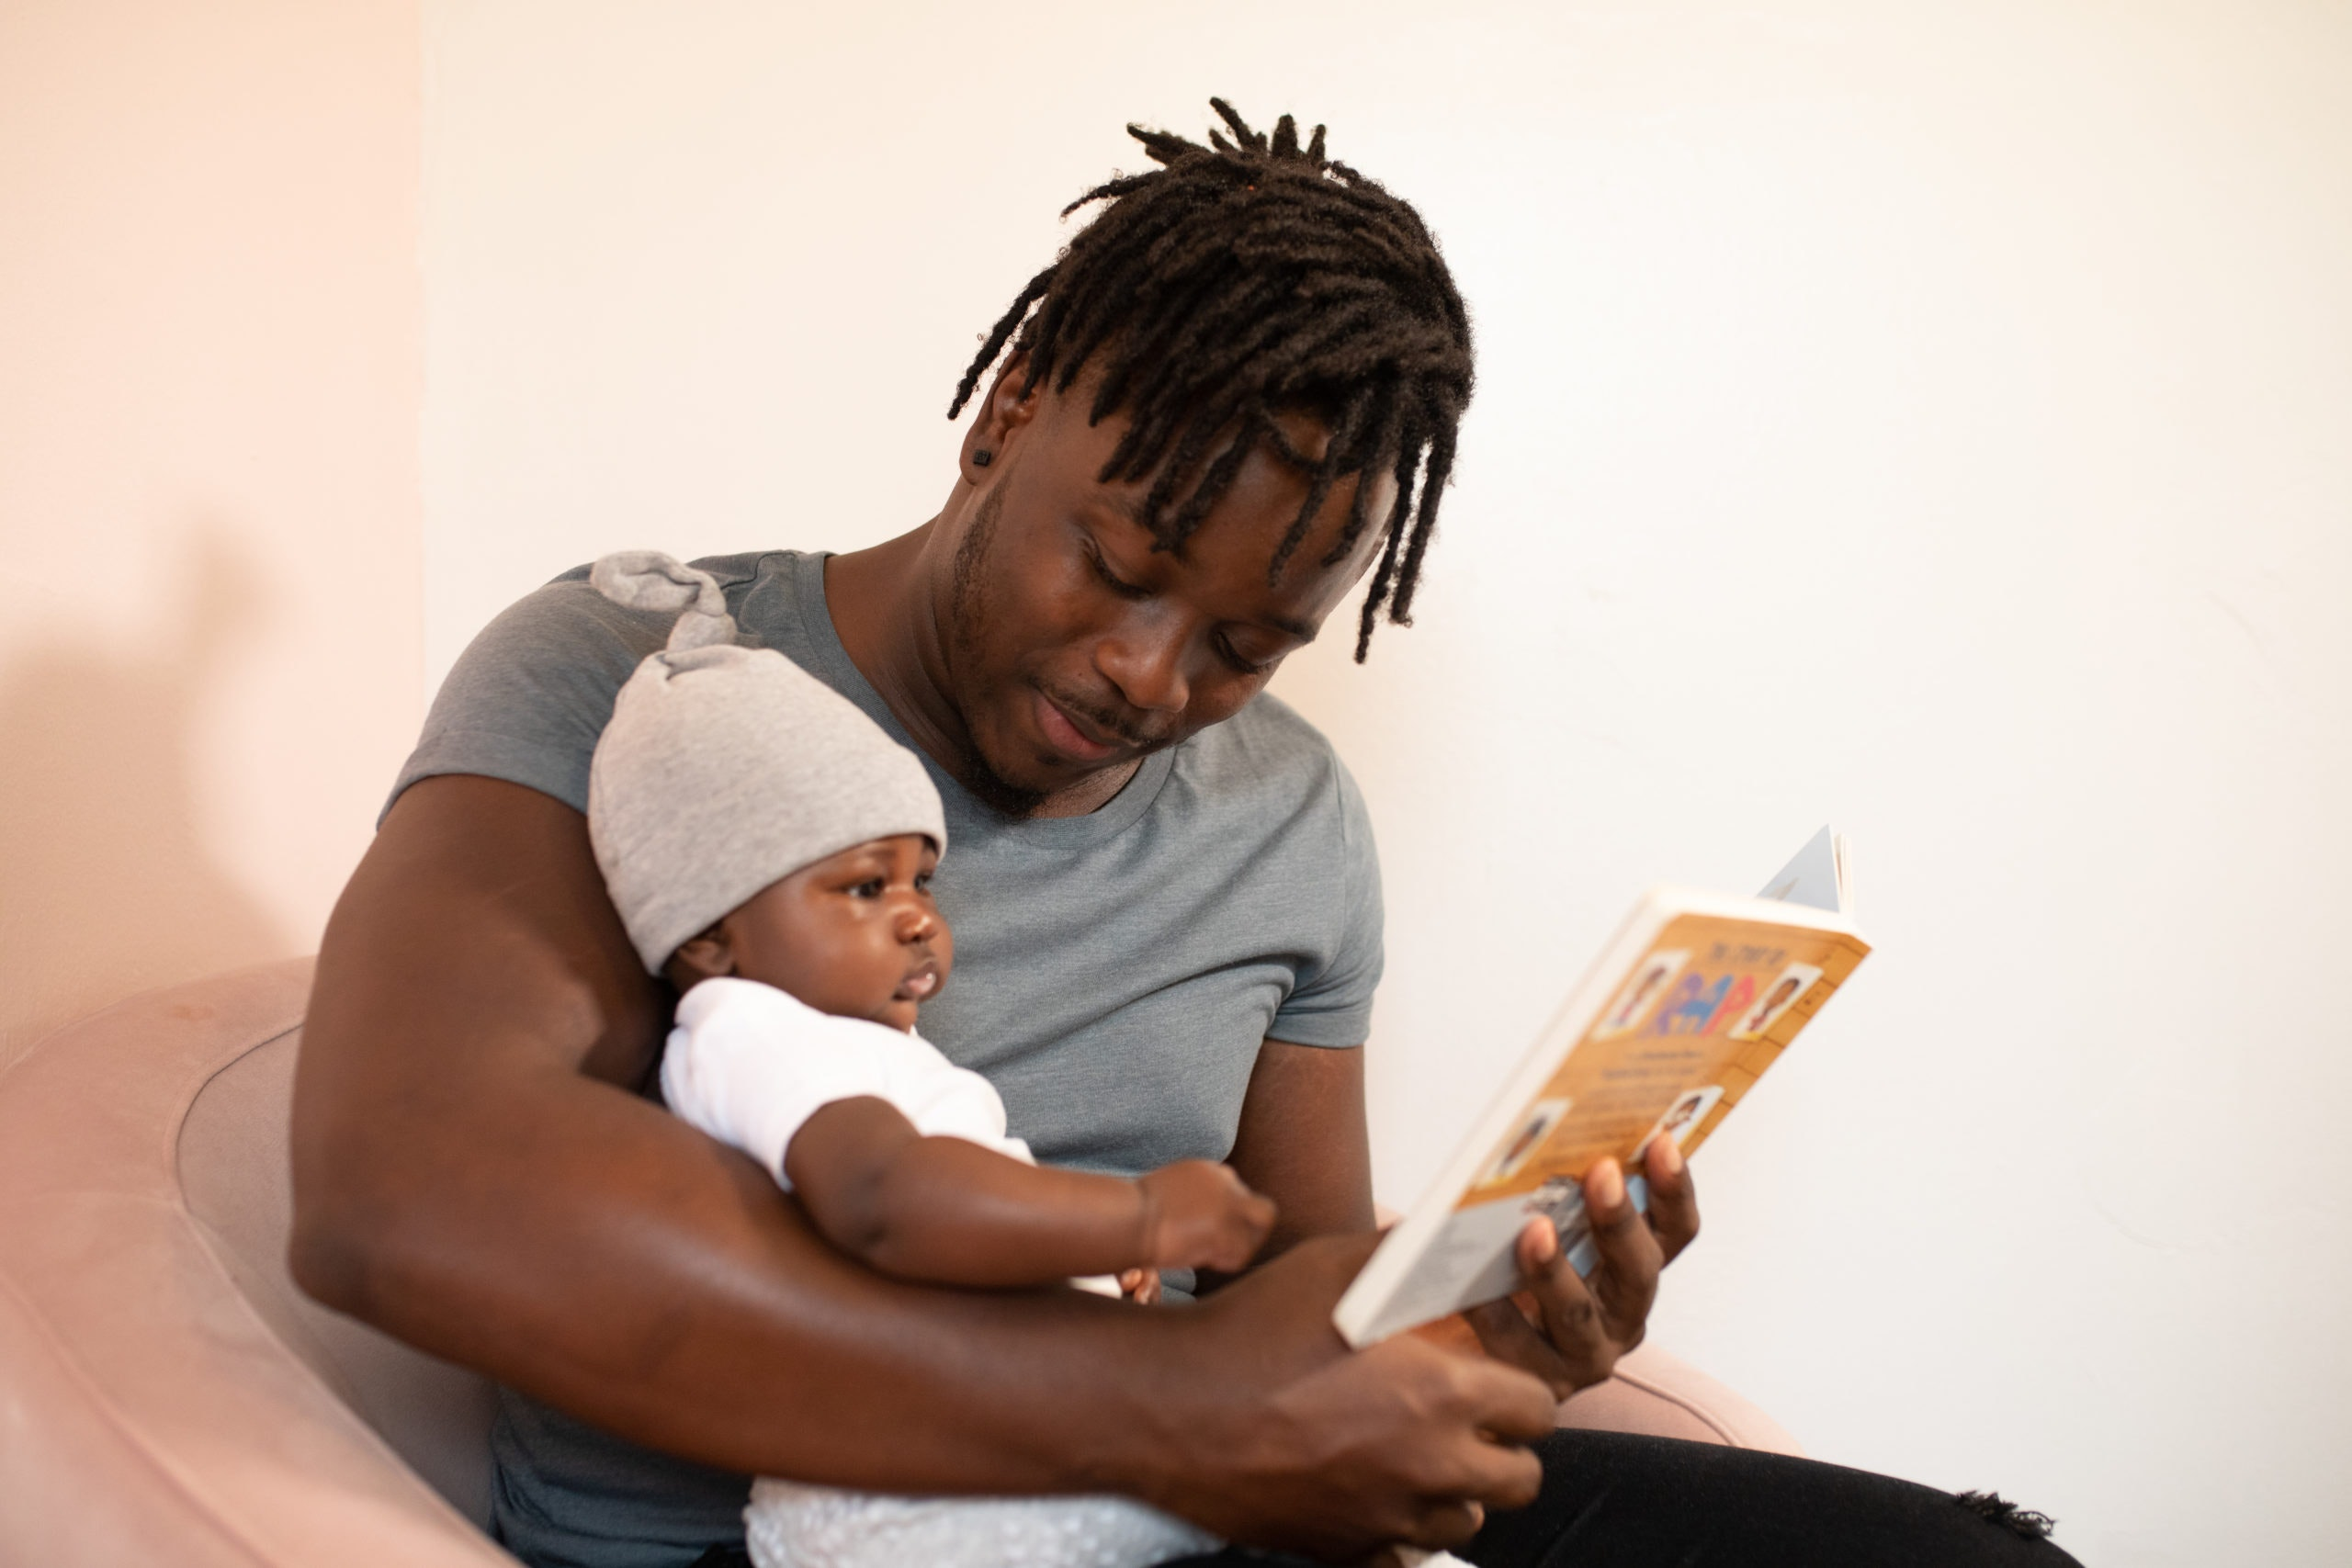 Man in gray t-shirt reading to baby (Photo by nappy from Pexels)